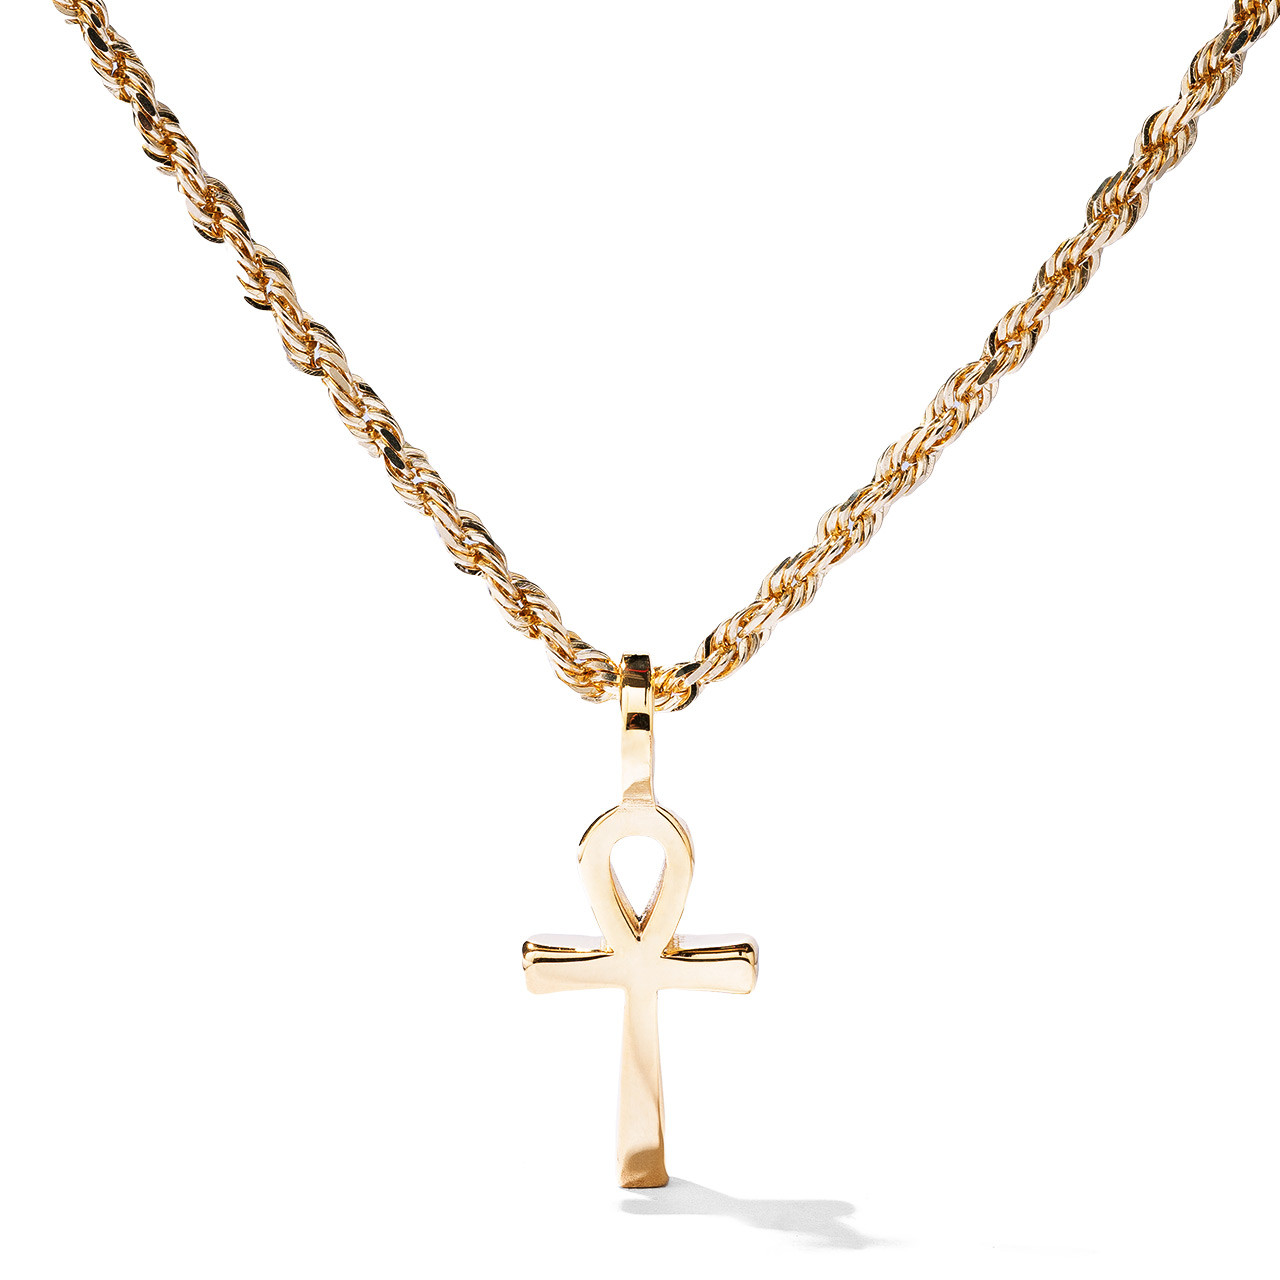 Solid 14k White Gold Ankh Cross Charm Necklace